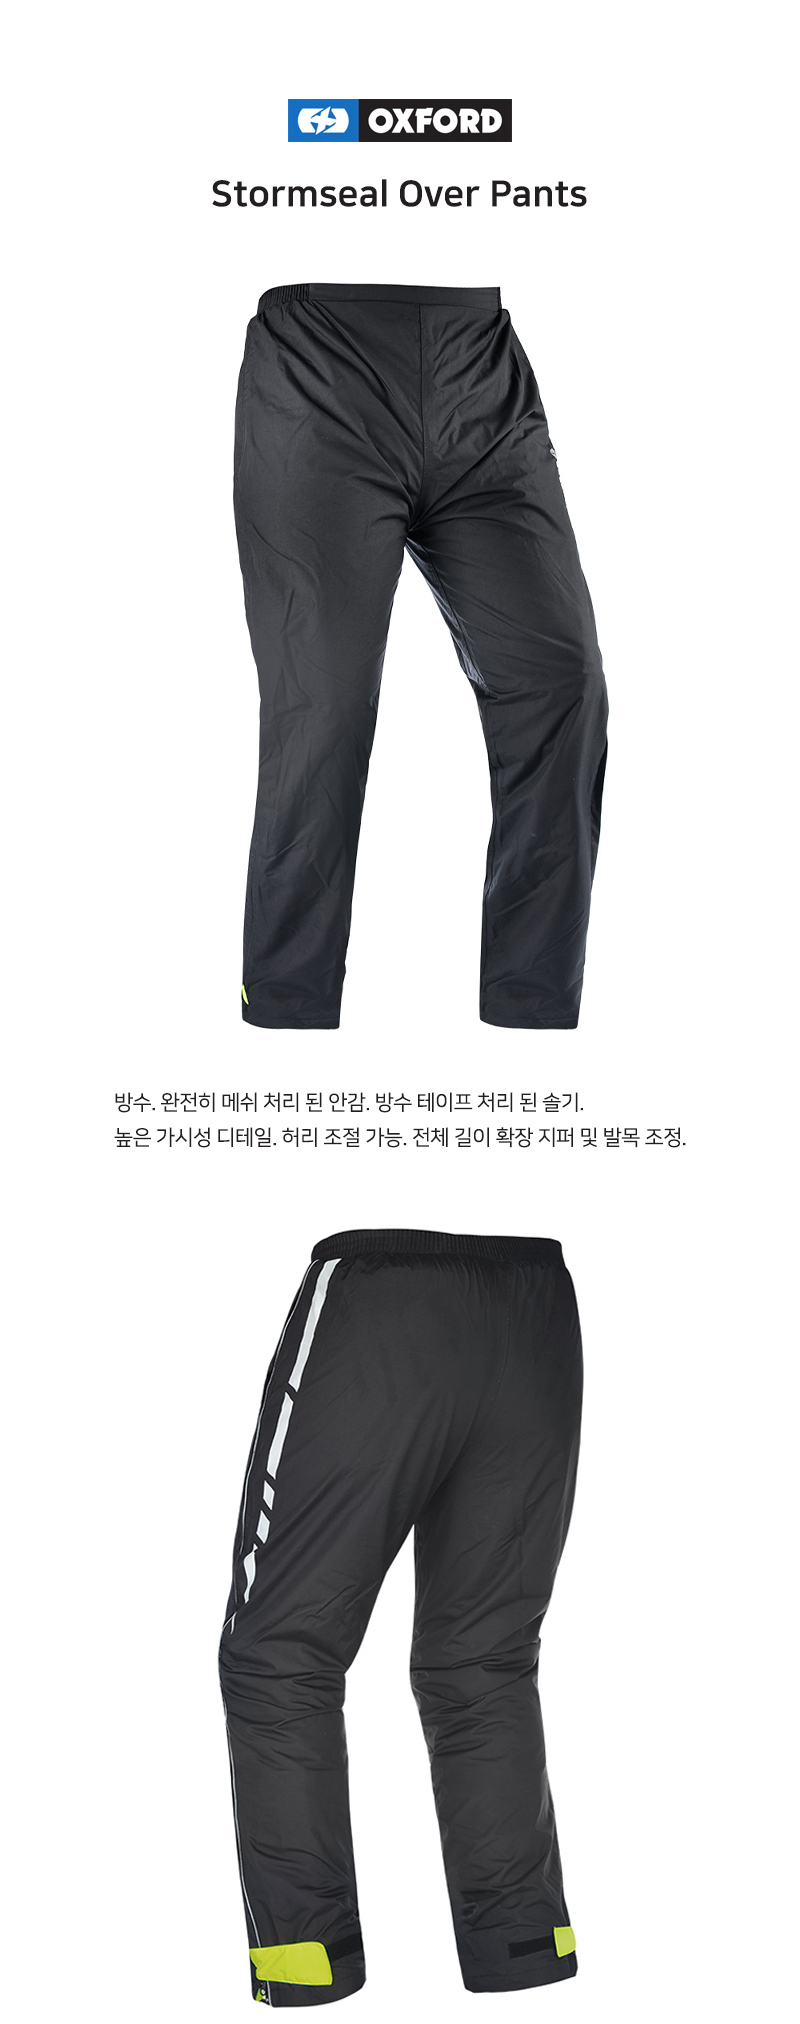 Oxford RM220 Stormseal Over Pants 스톰실 오버팬츠